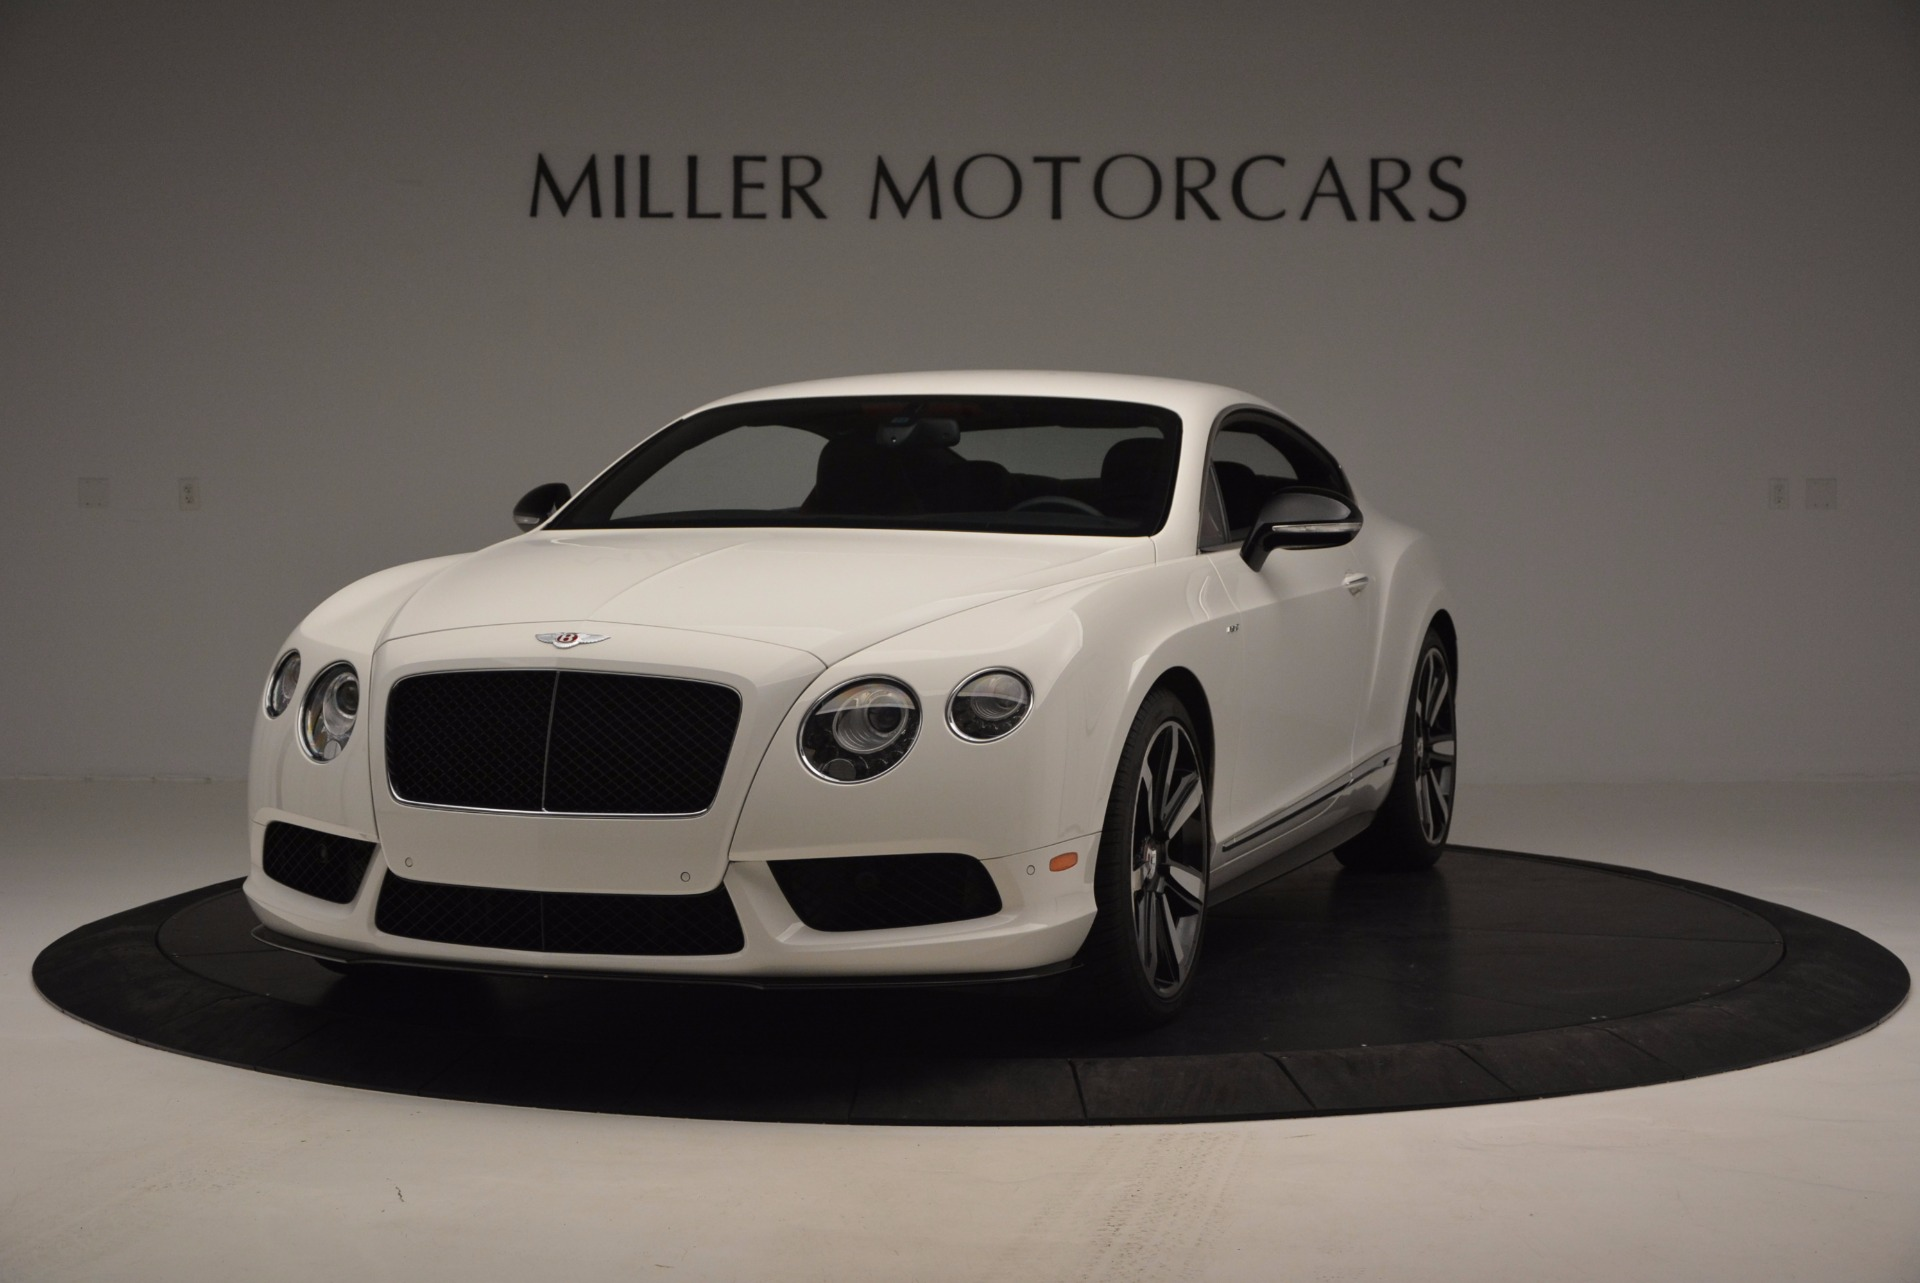 Used 2014 Bentley Continental GT V8 S for sale Sold at Bentley Greenwich in Greenwich CT 06830 1